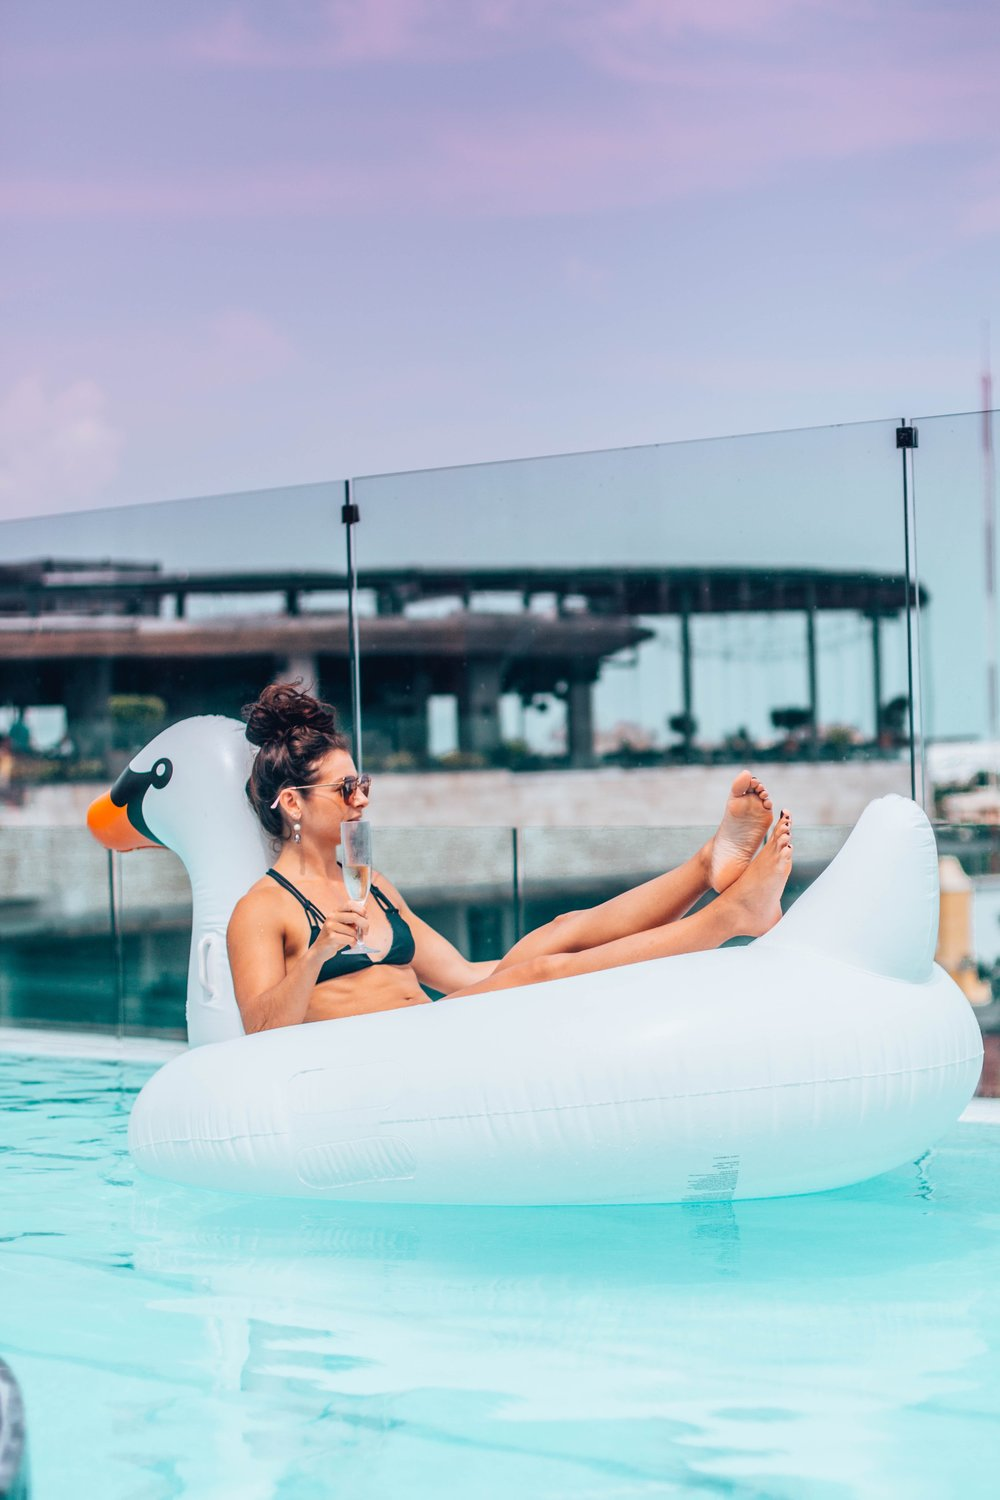 Chilling with Prosecco on a Swan Floatie!